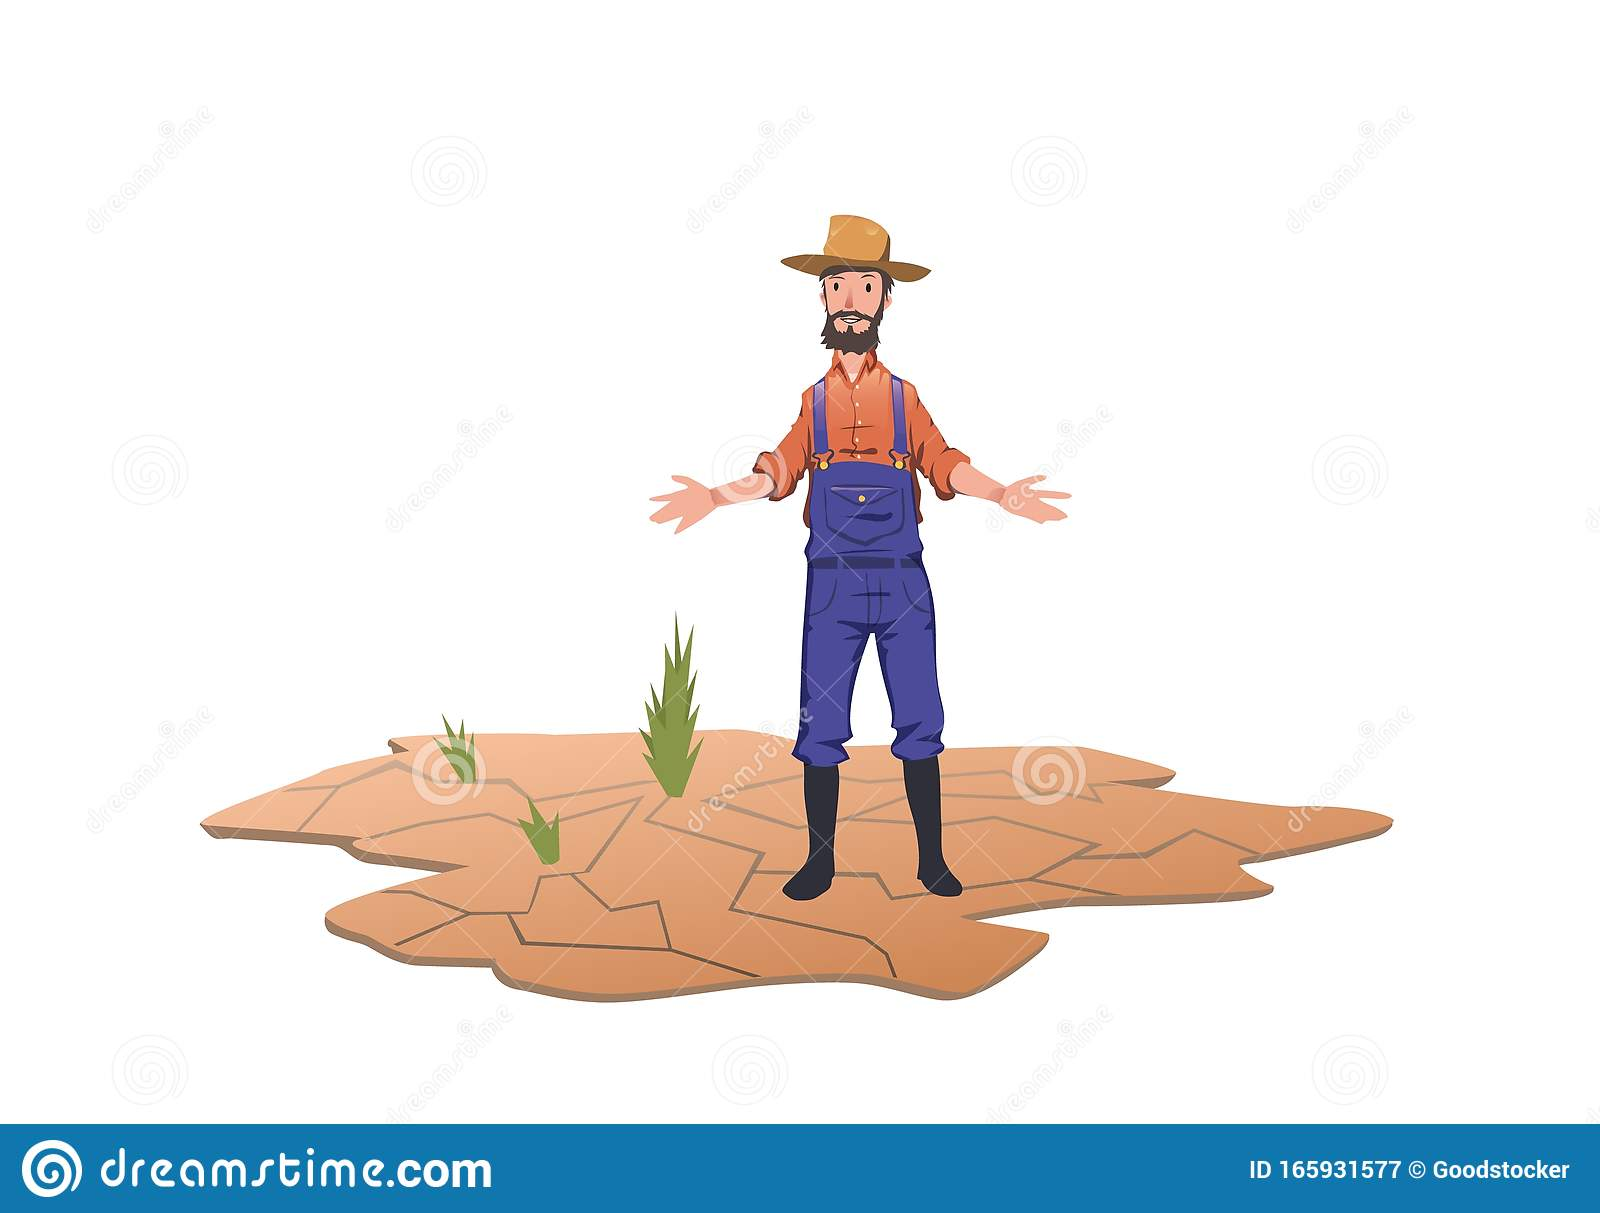 A Farmer Standing Next To Green Sprouts On A Dry Field Concept Of Drought Global Warming Lack Of Water Irrigation Stock Vector Illustration Of Damage Isolated 165931577